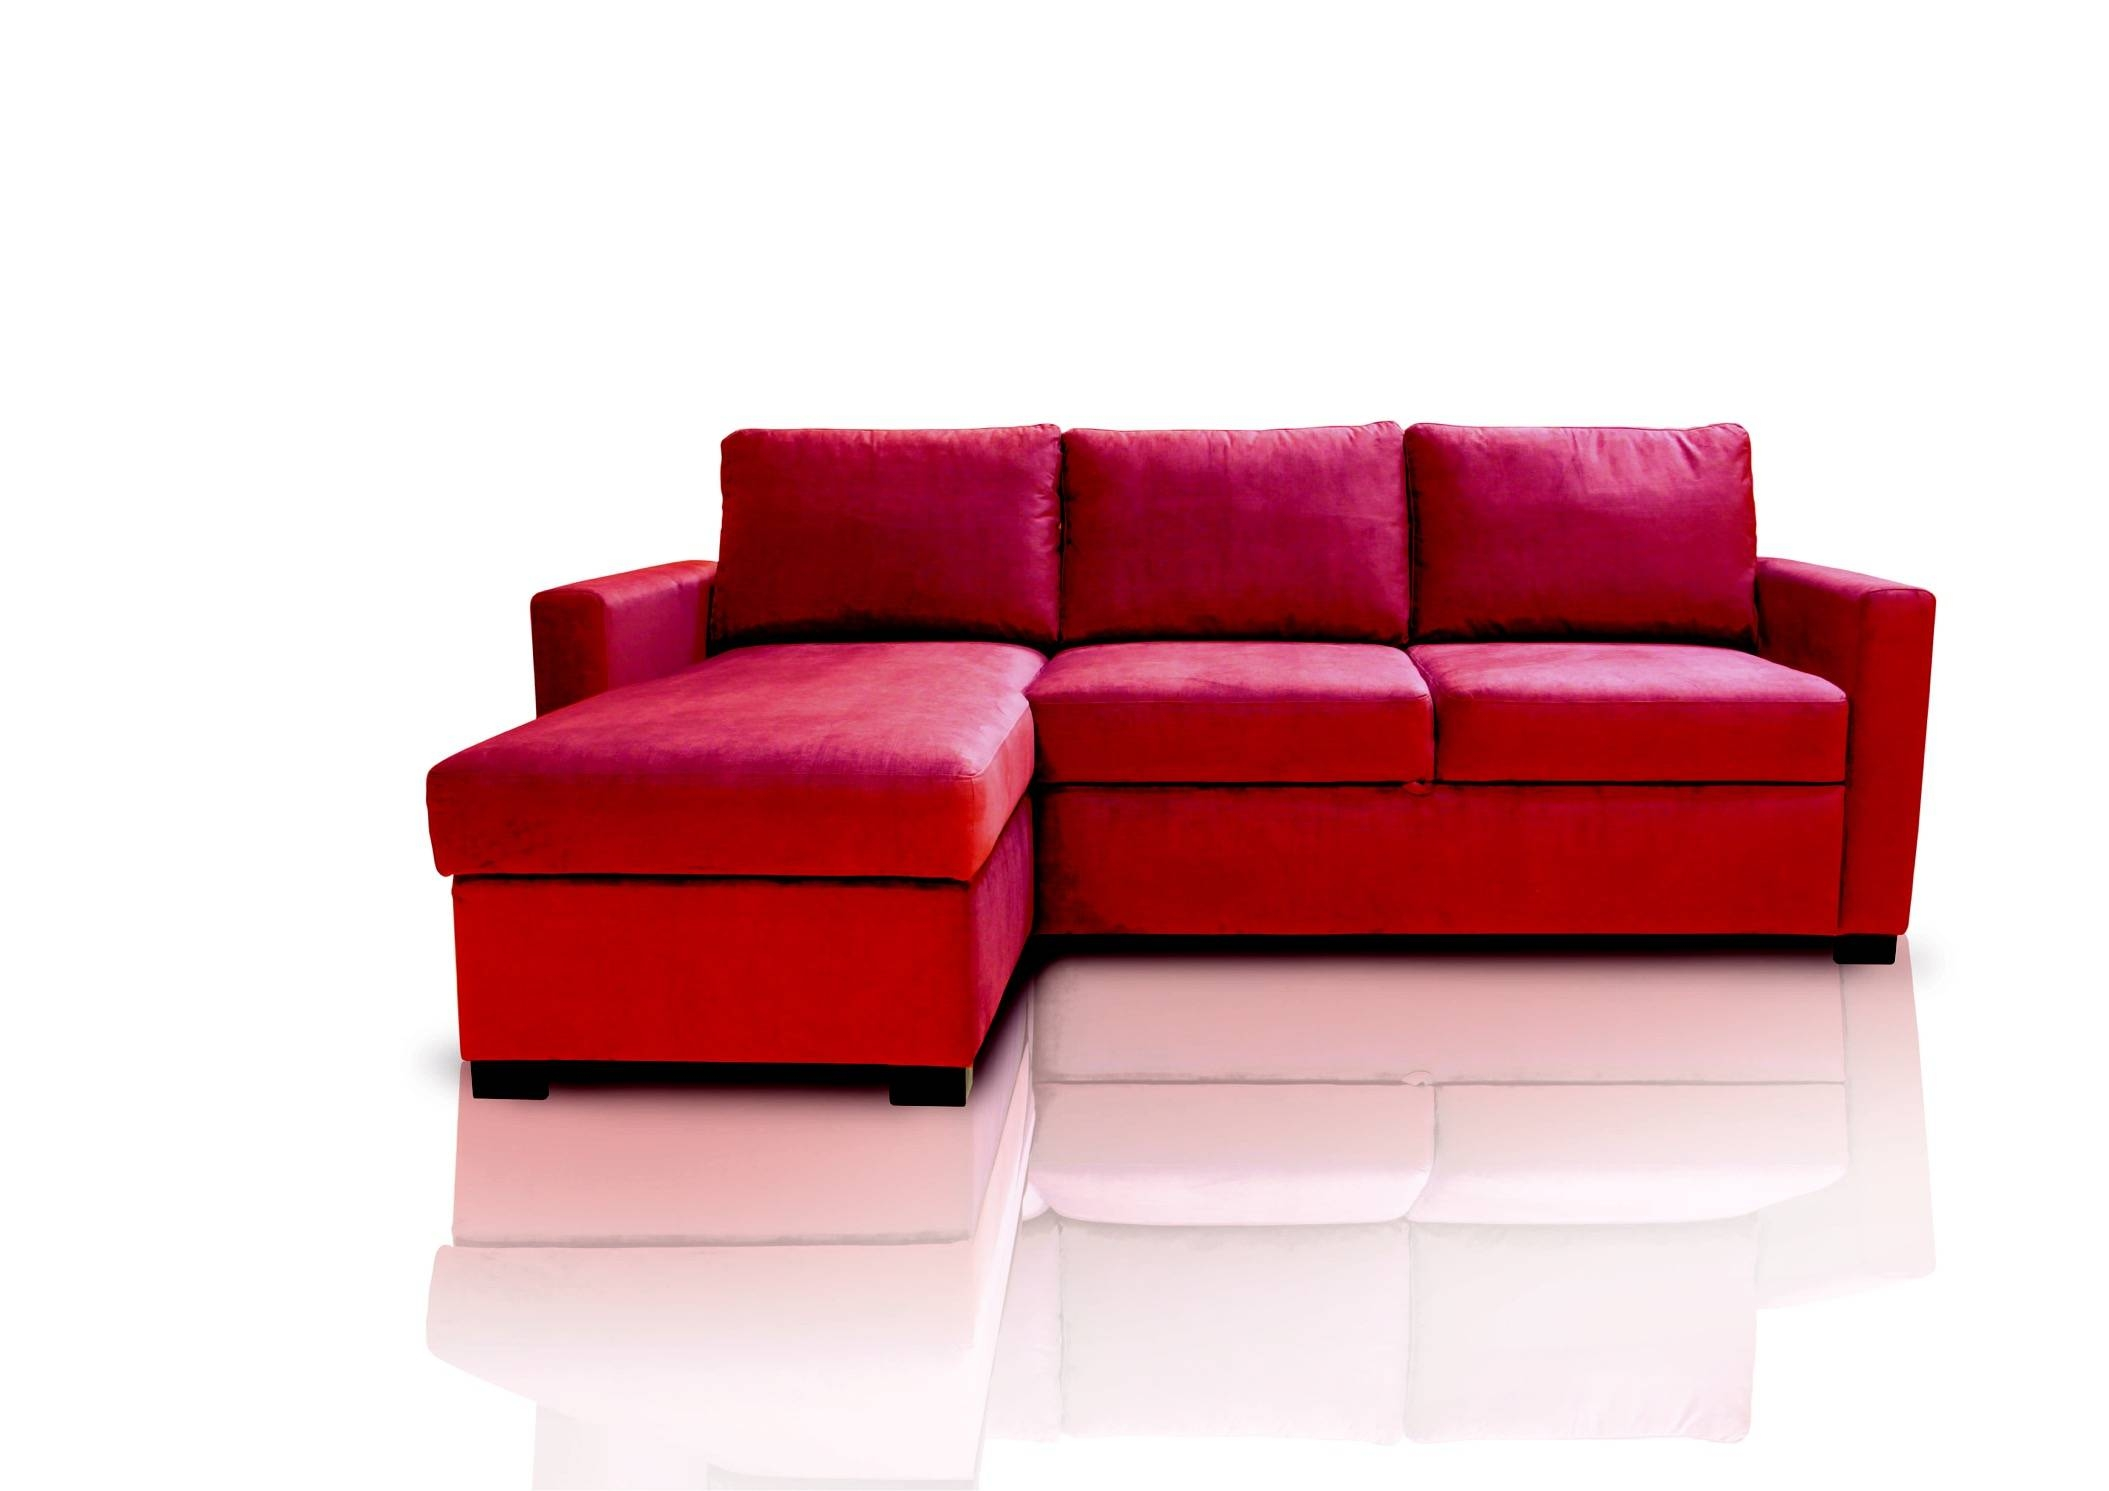 Red Sofa ~ Home & Interior Design throughout Red Sofa Chairs (Image 22 of 30)